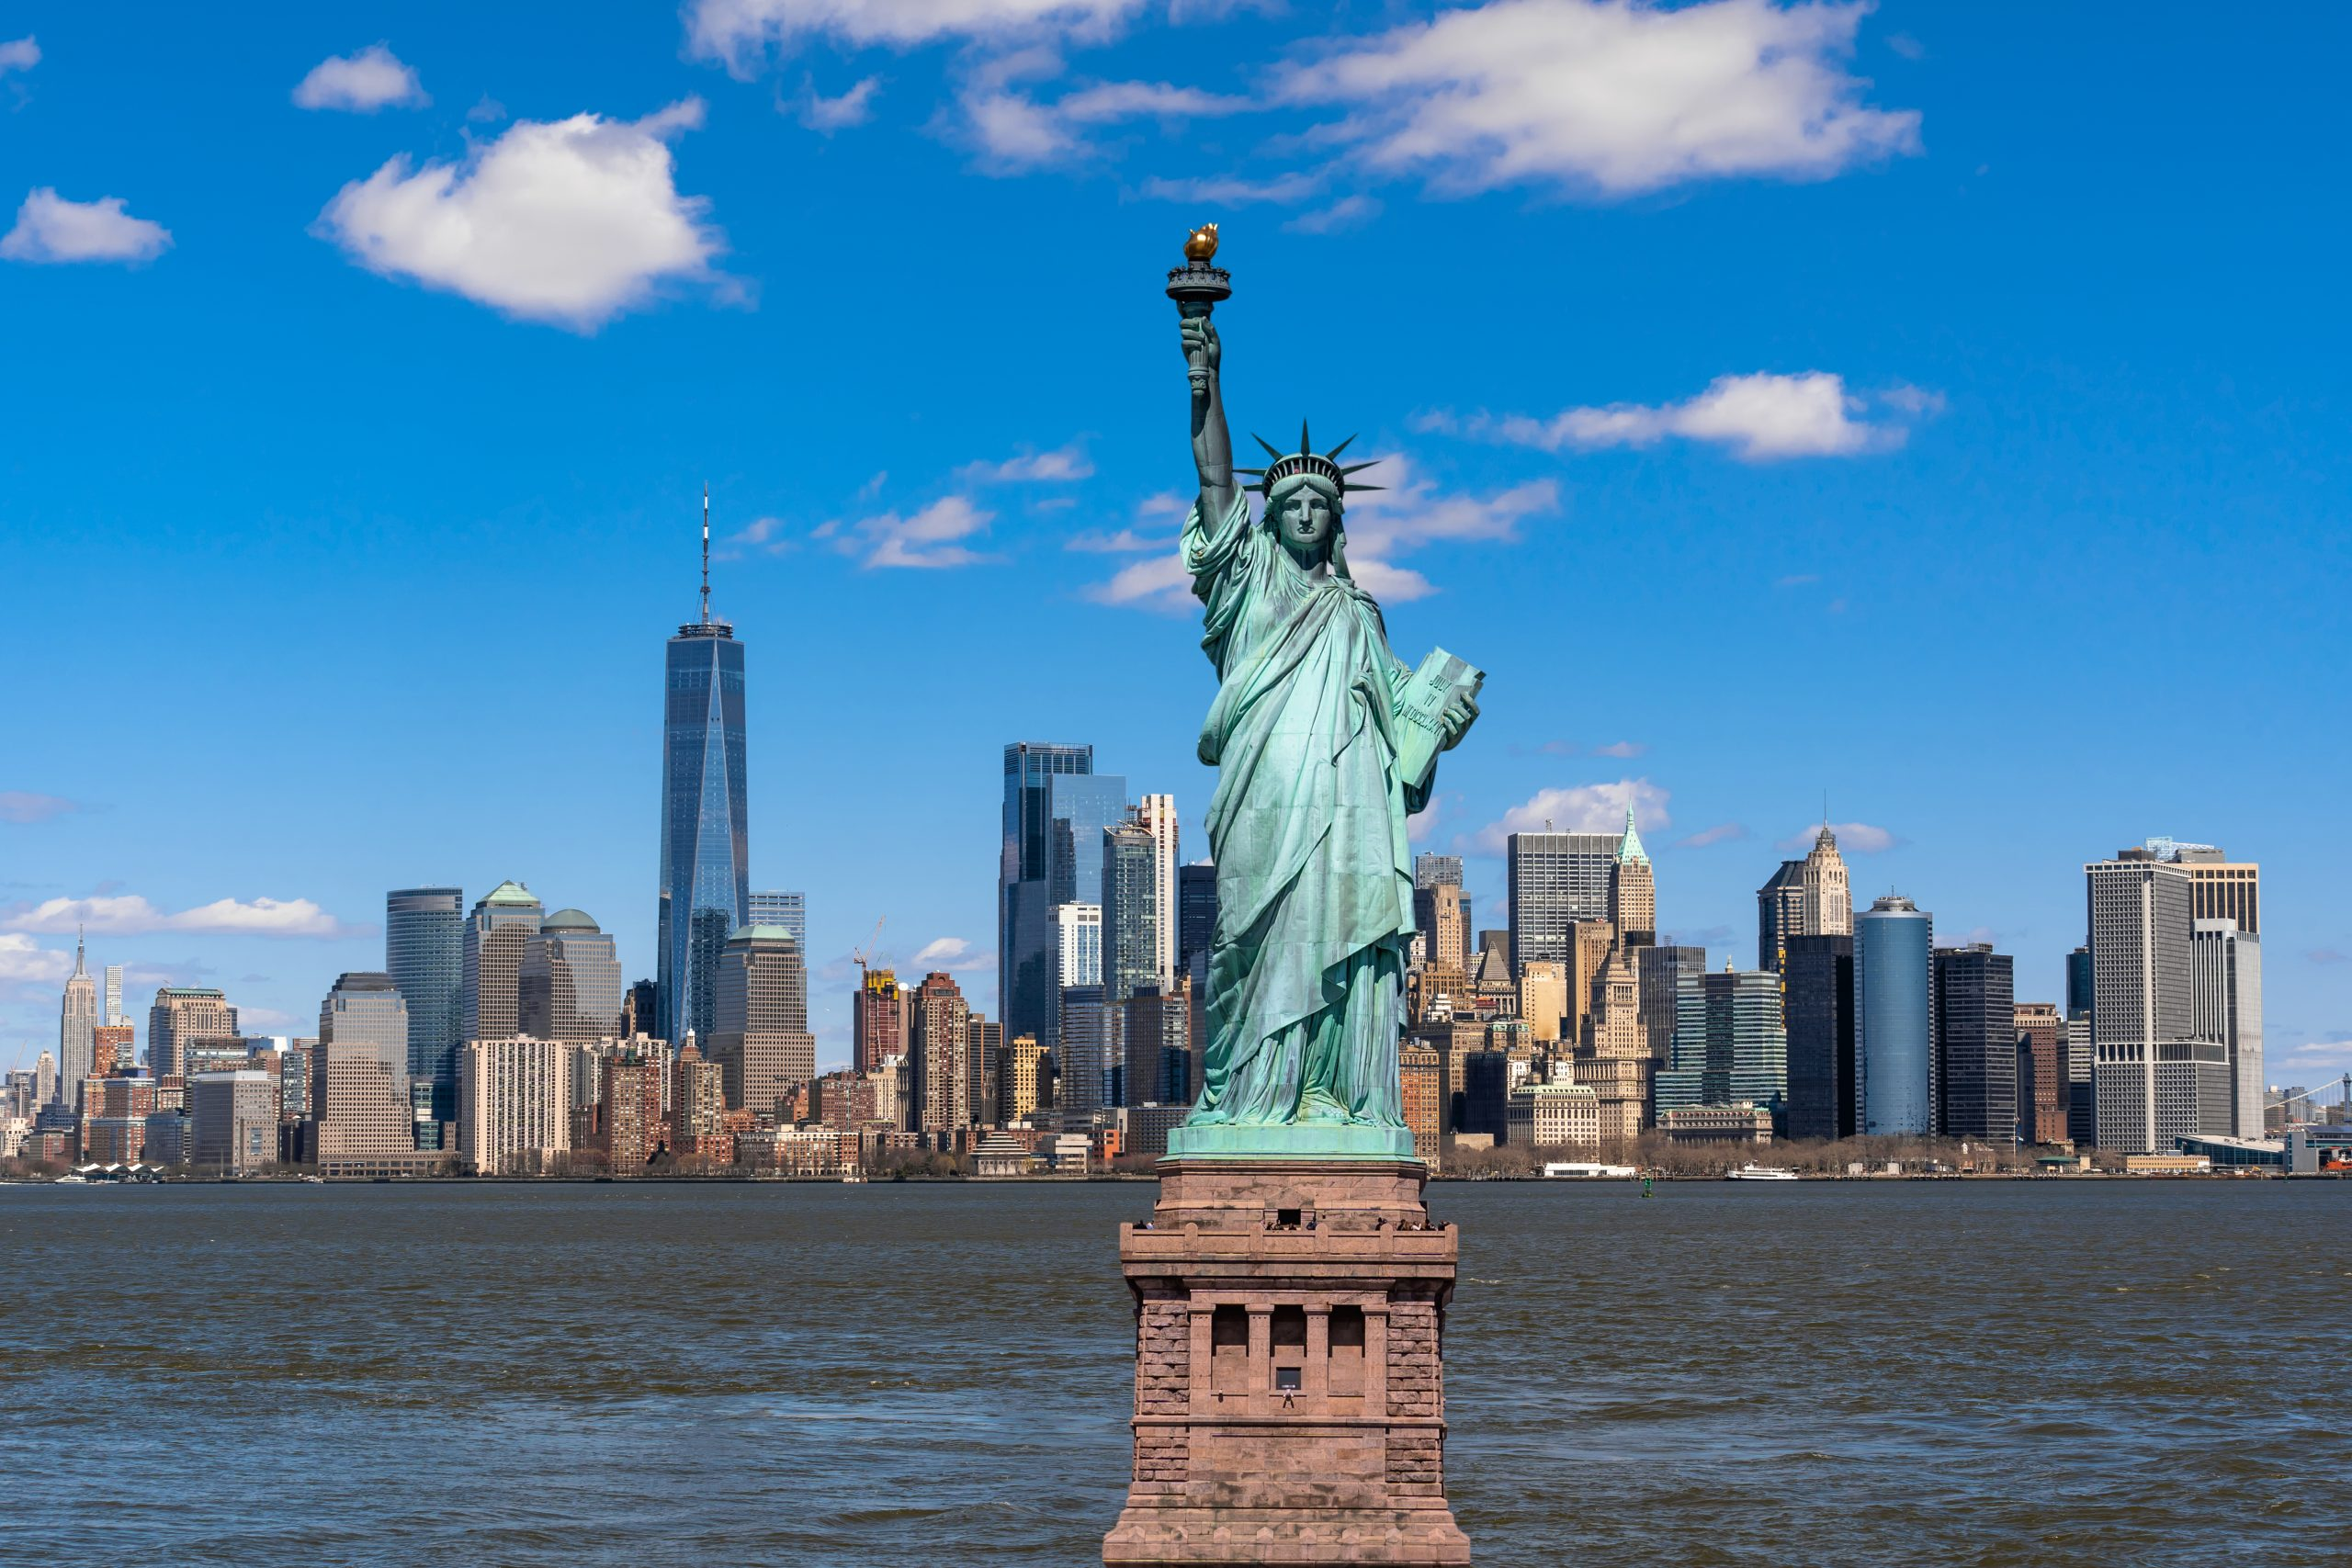 STATUE OF LIBERTY & ELLIS ISLAND: OCTOBER 10, 2020 - Wade Tours Bus Tours